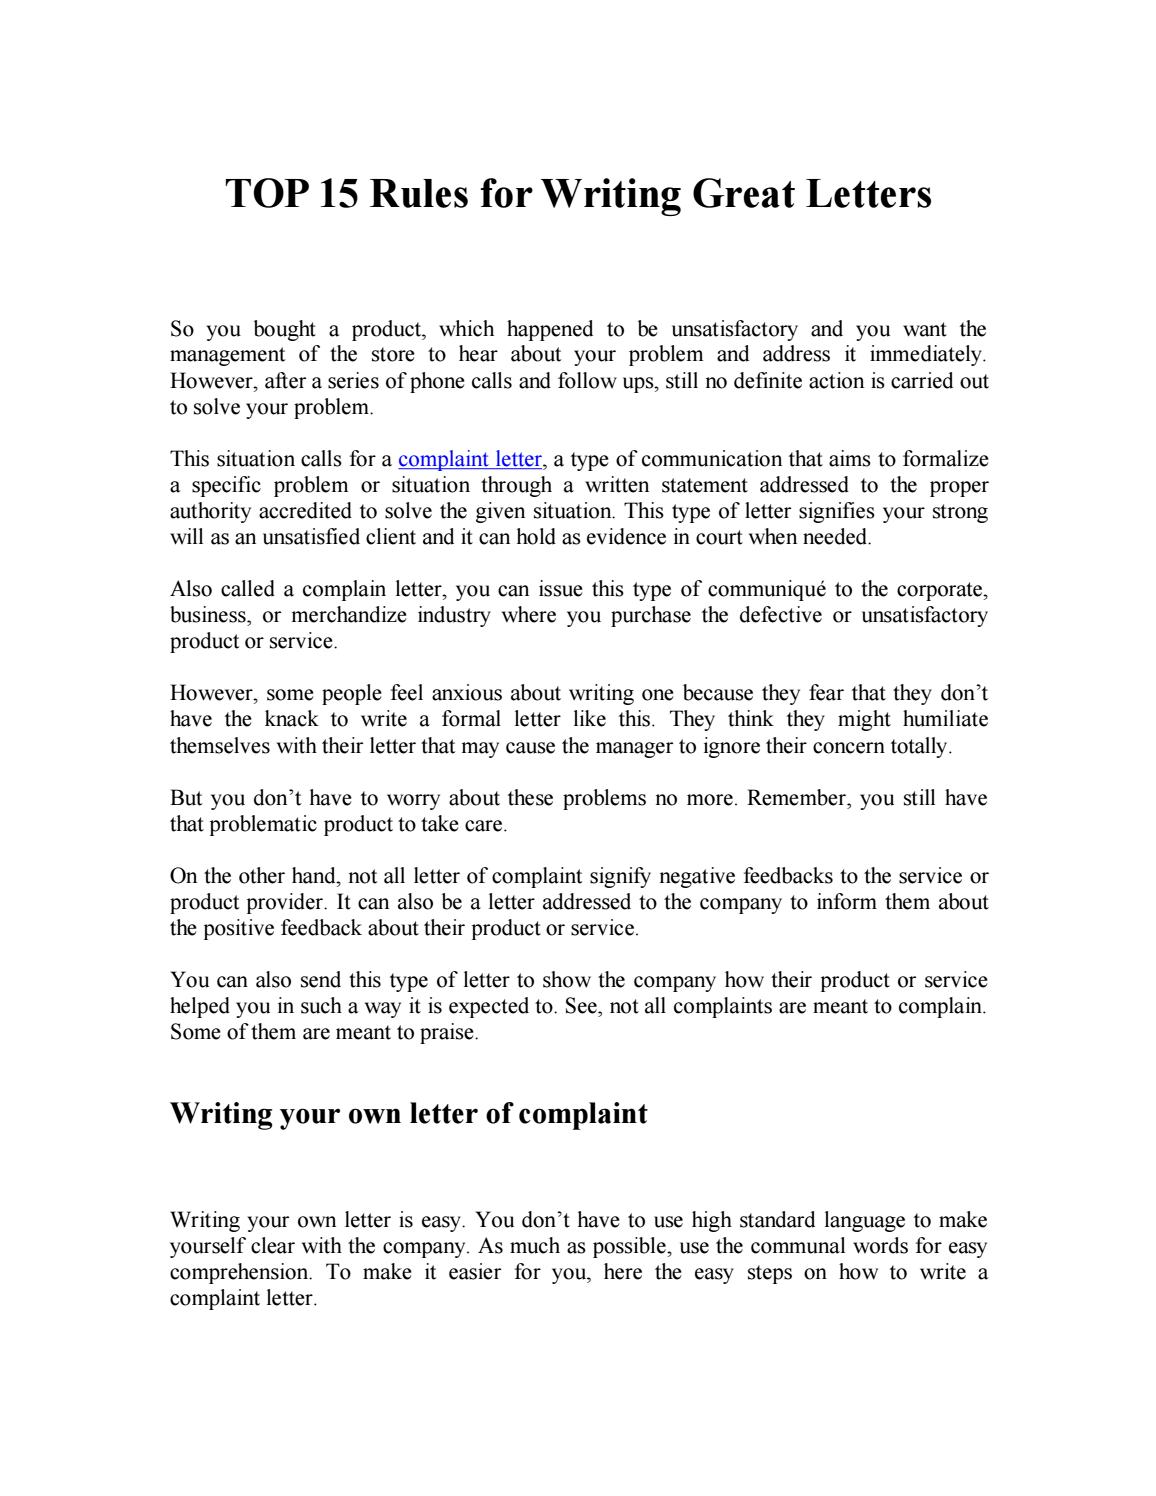 Top 15 rules for writing great letters by Effective Letters